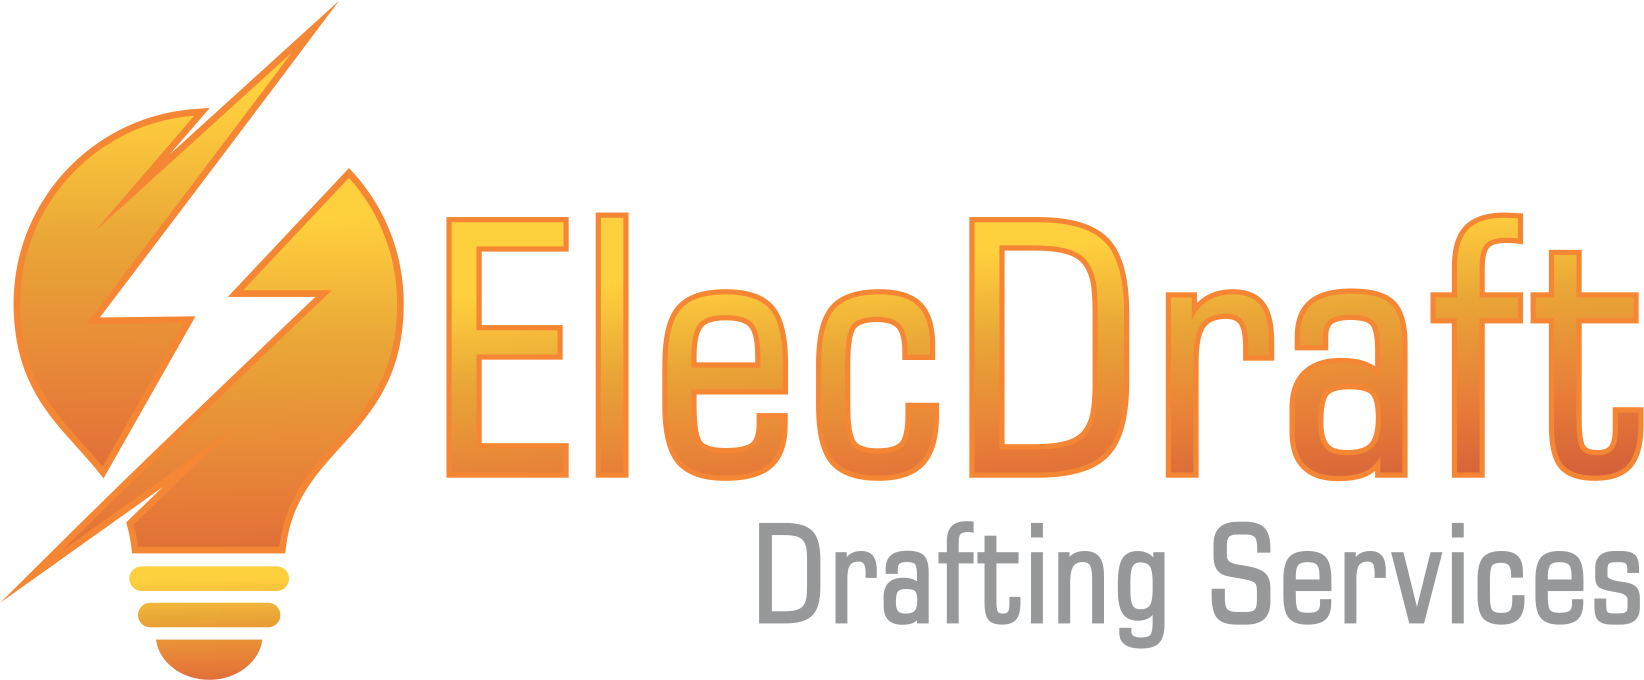 ElecDraft Electrical Services Drafting